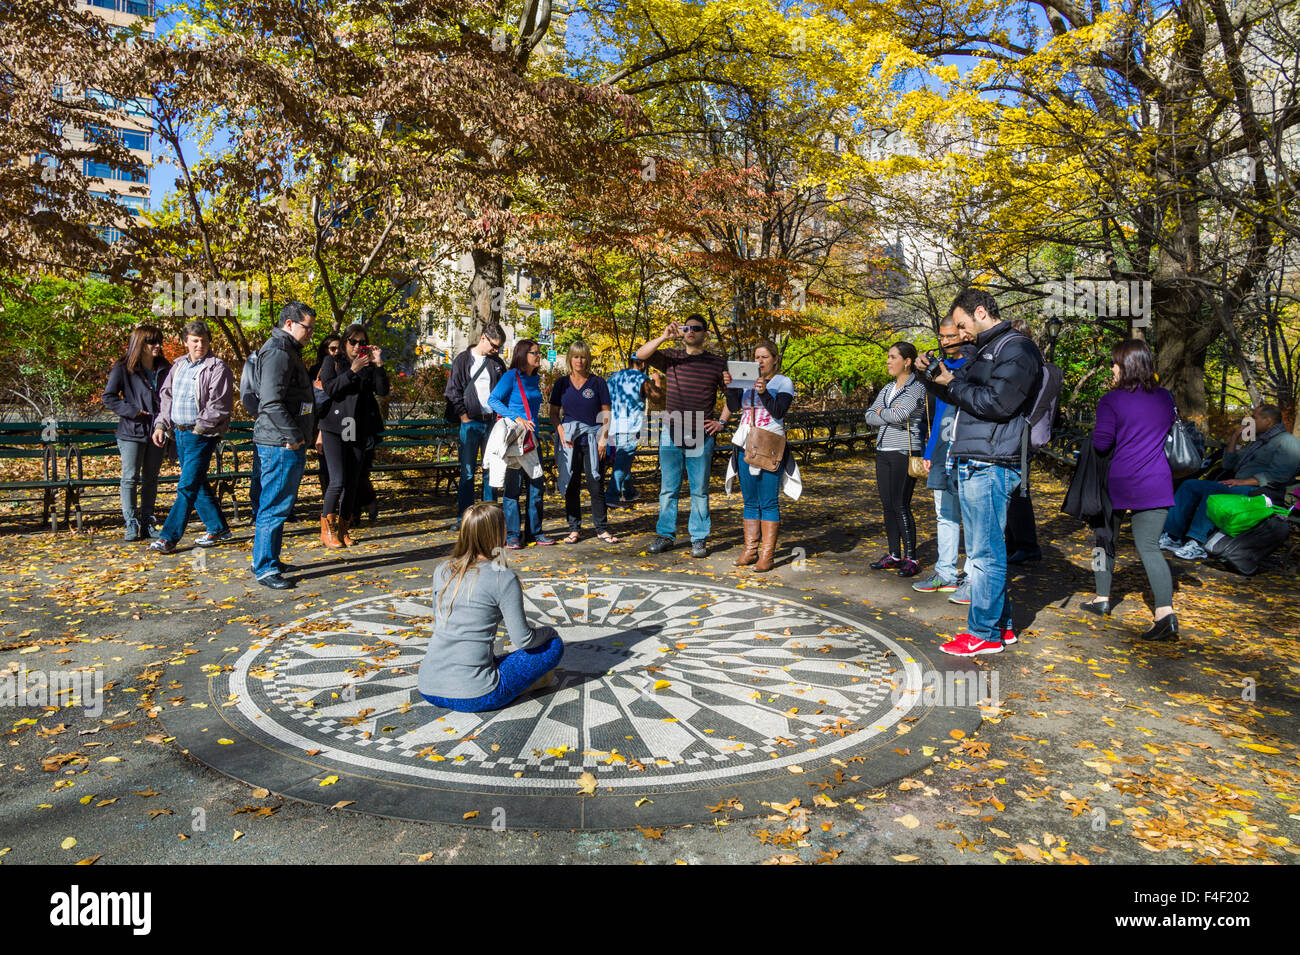 USA, New York, New York City, Central Park, John Lennon Memorial, Imagine, Strawberry Fields, with tourists - Stock Image